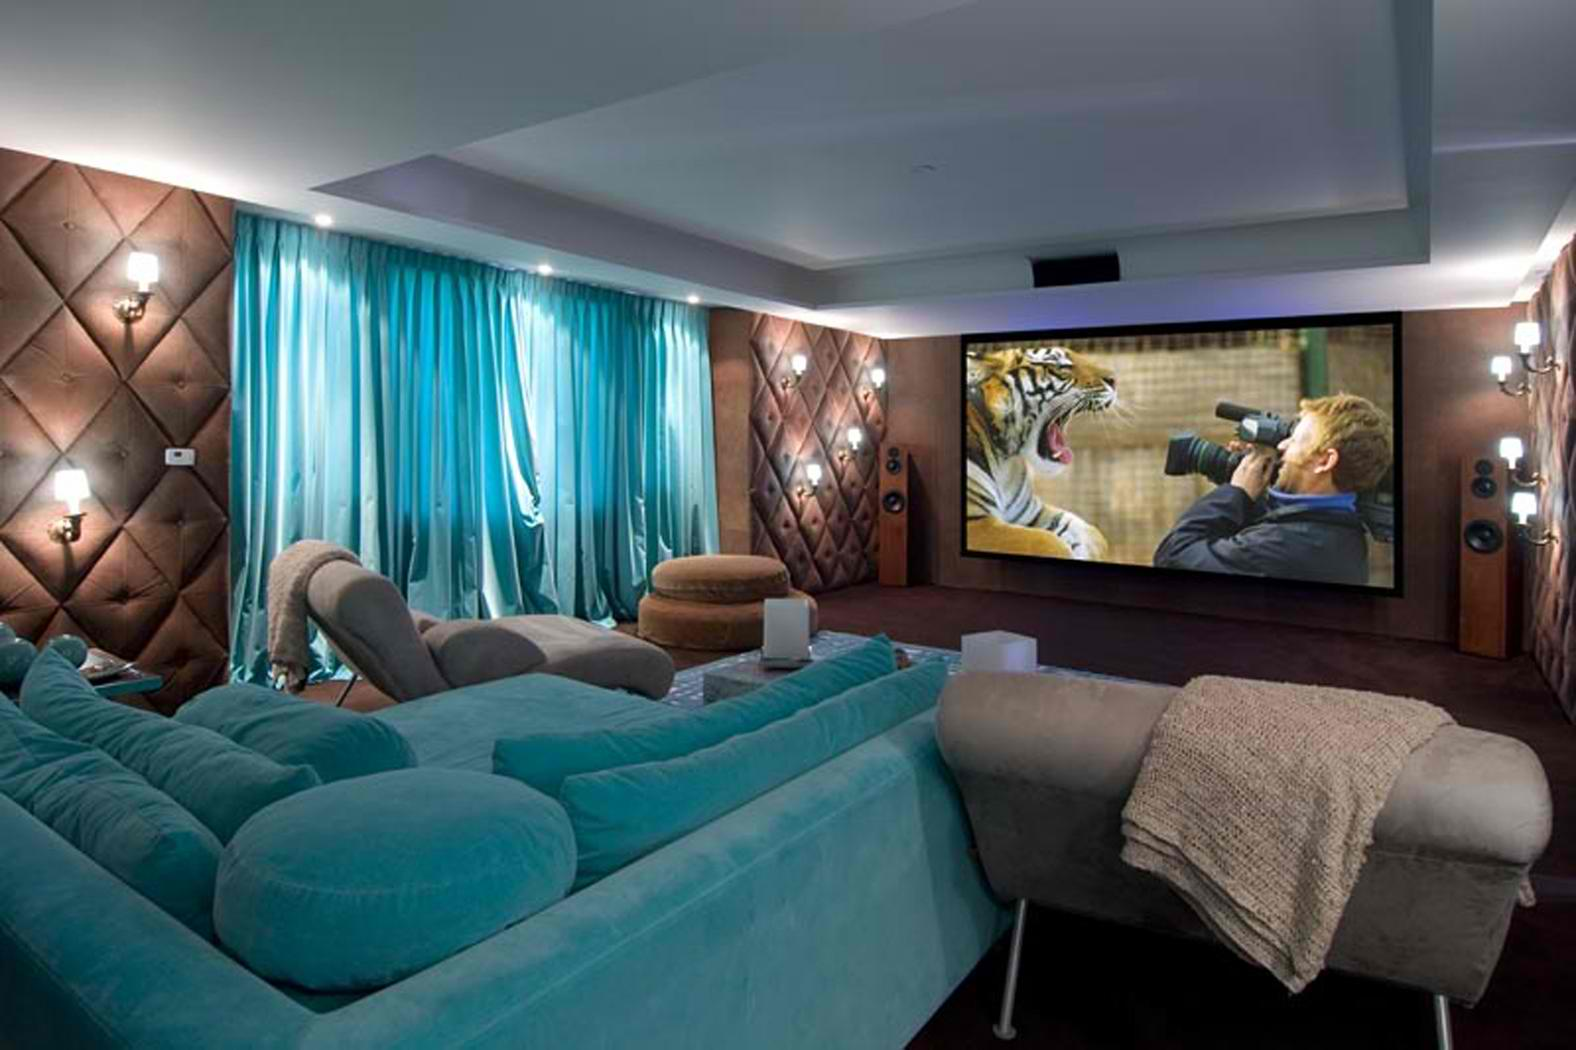 20 stunning home theater rooms that inspire you decoholic Home movie theater